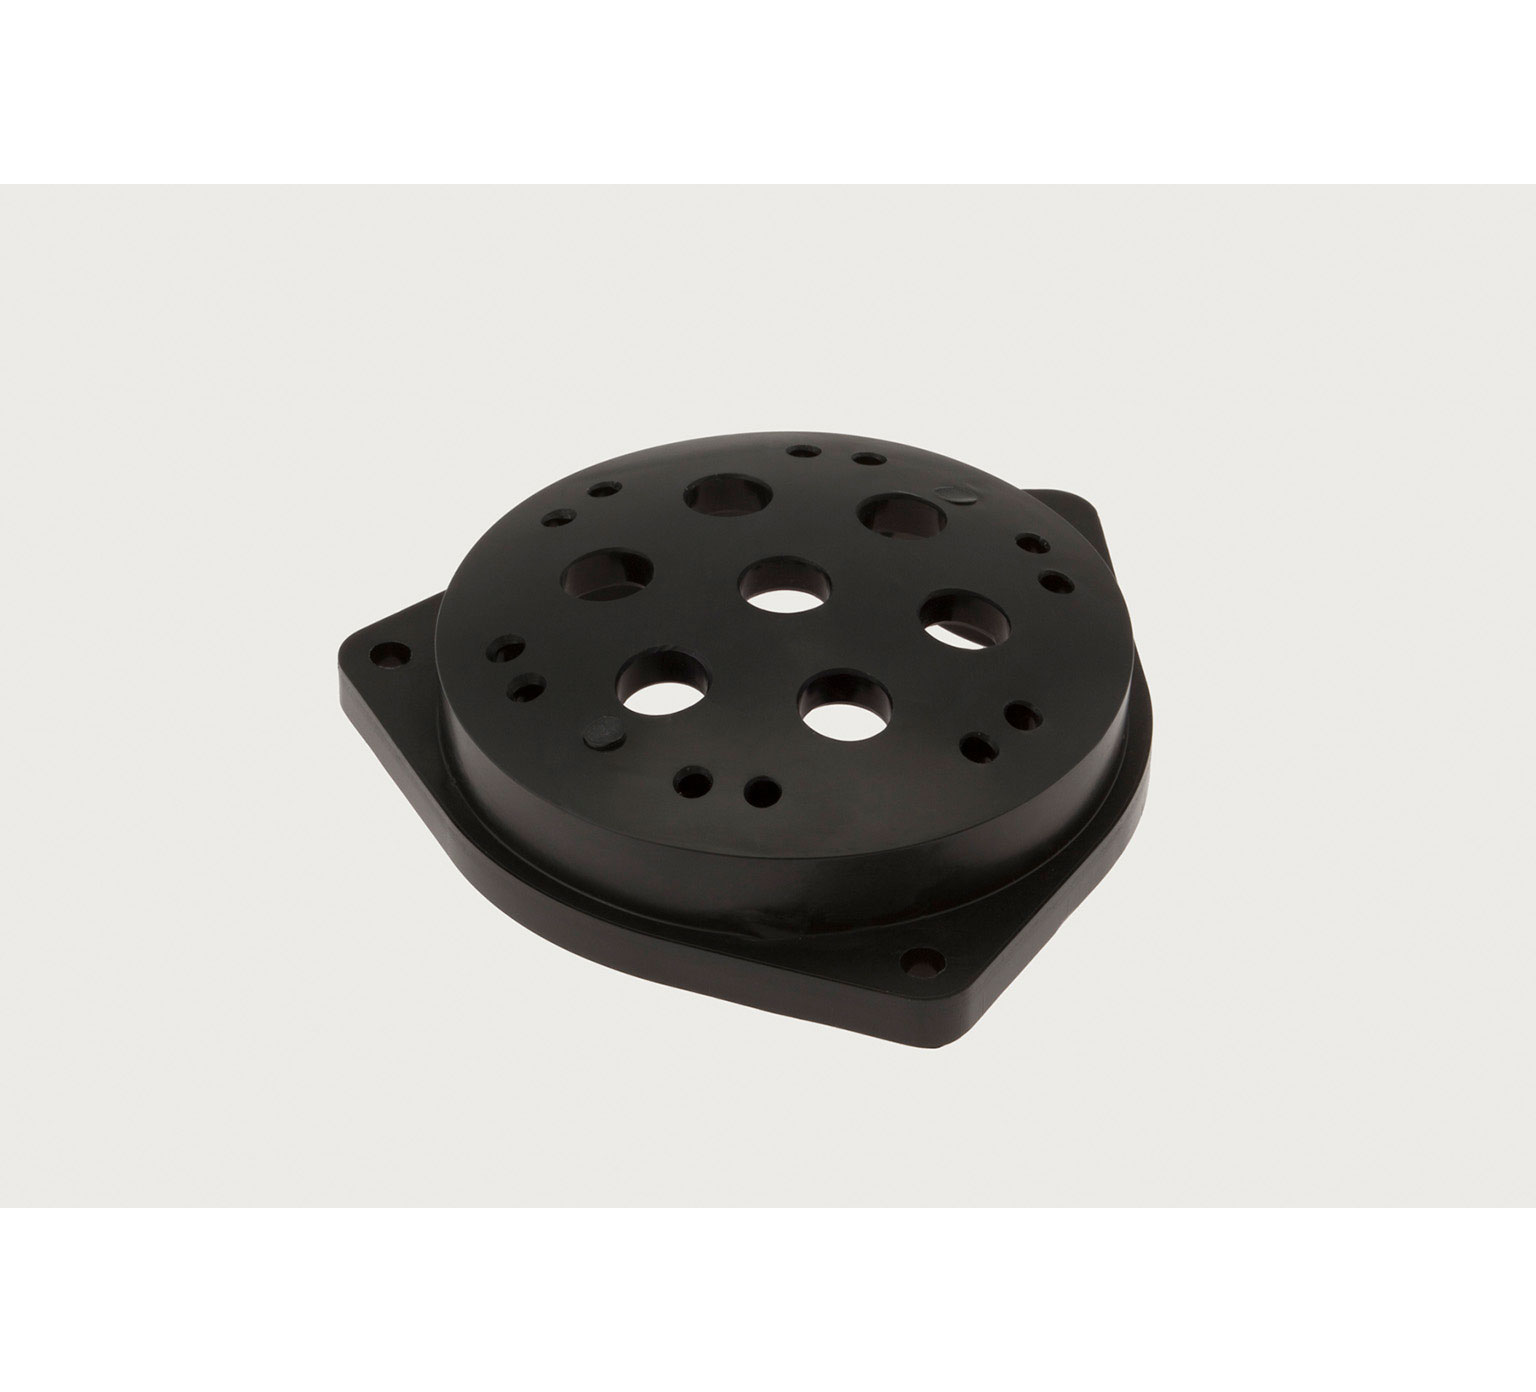 15539 Disk Brush Drive Hub - 5 in x 1.5 in alt 1